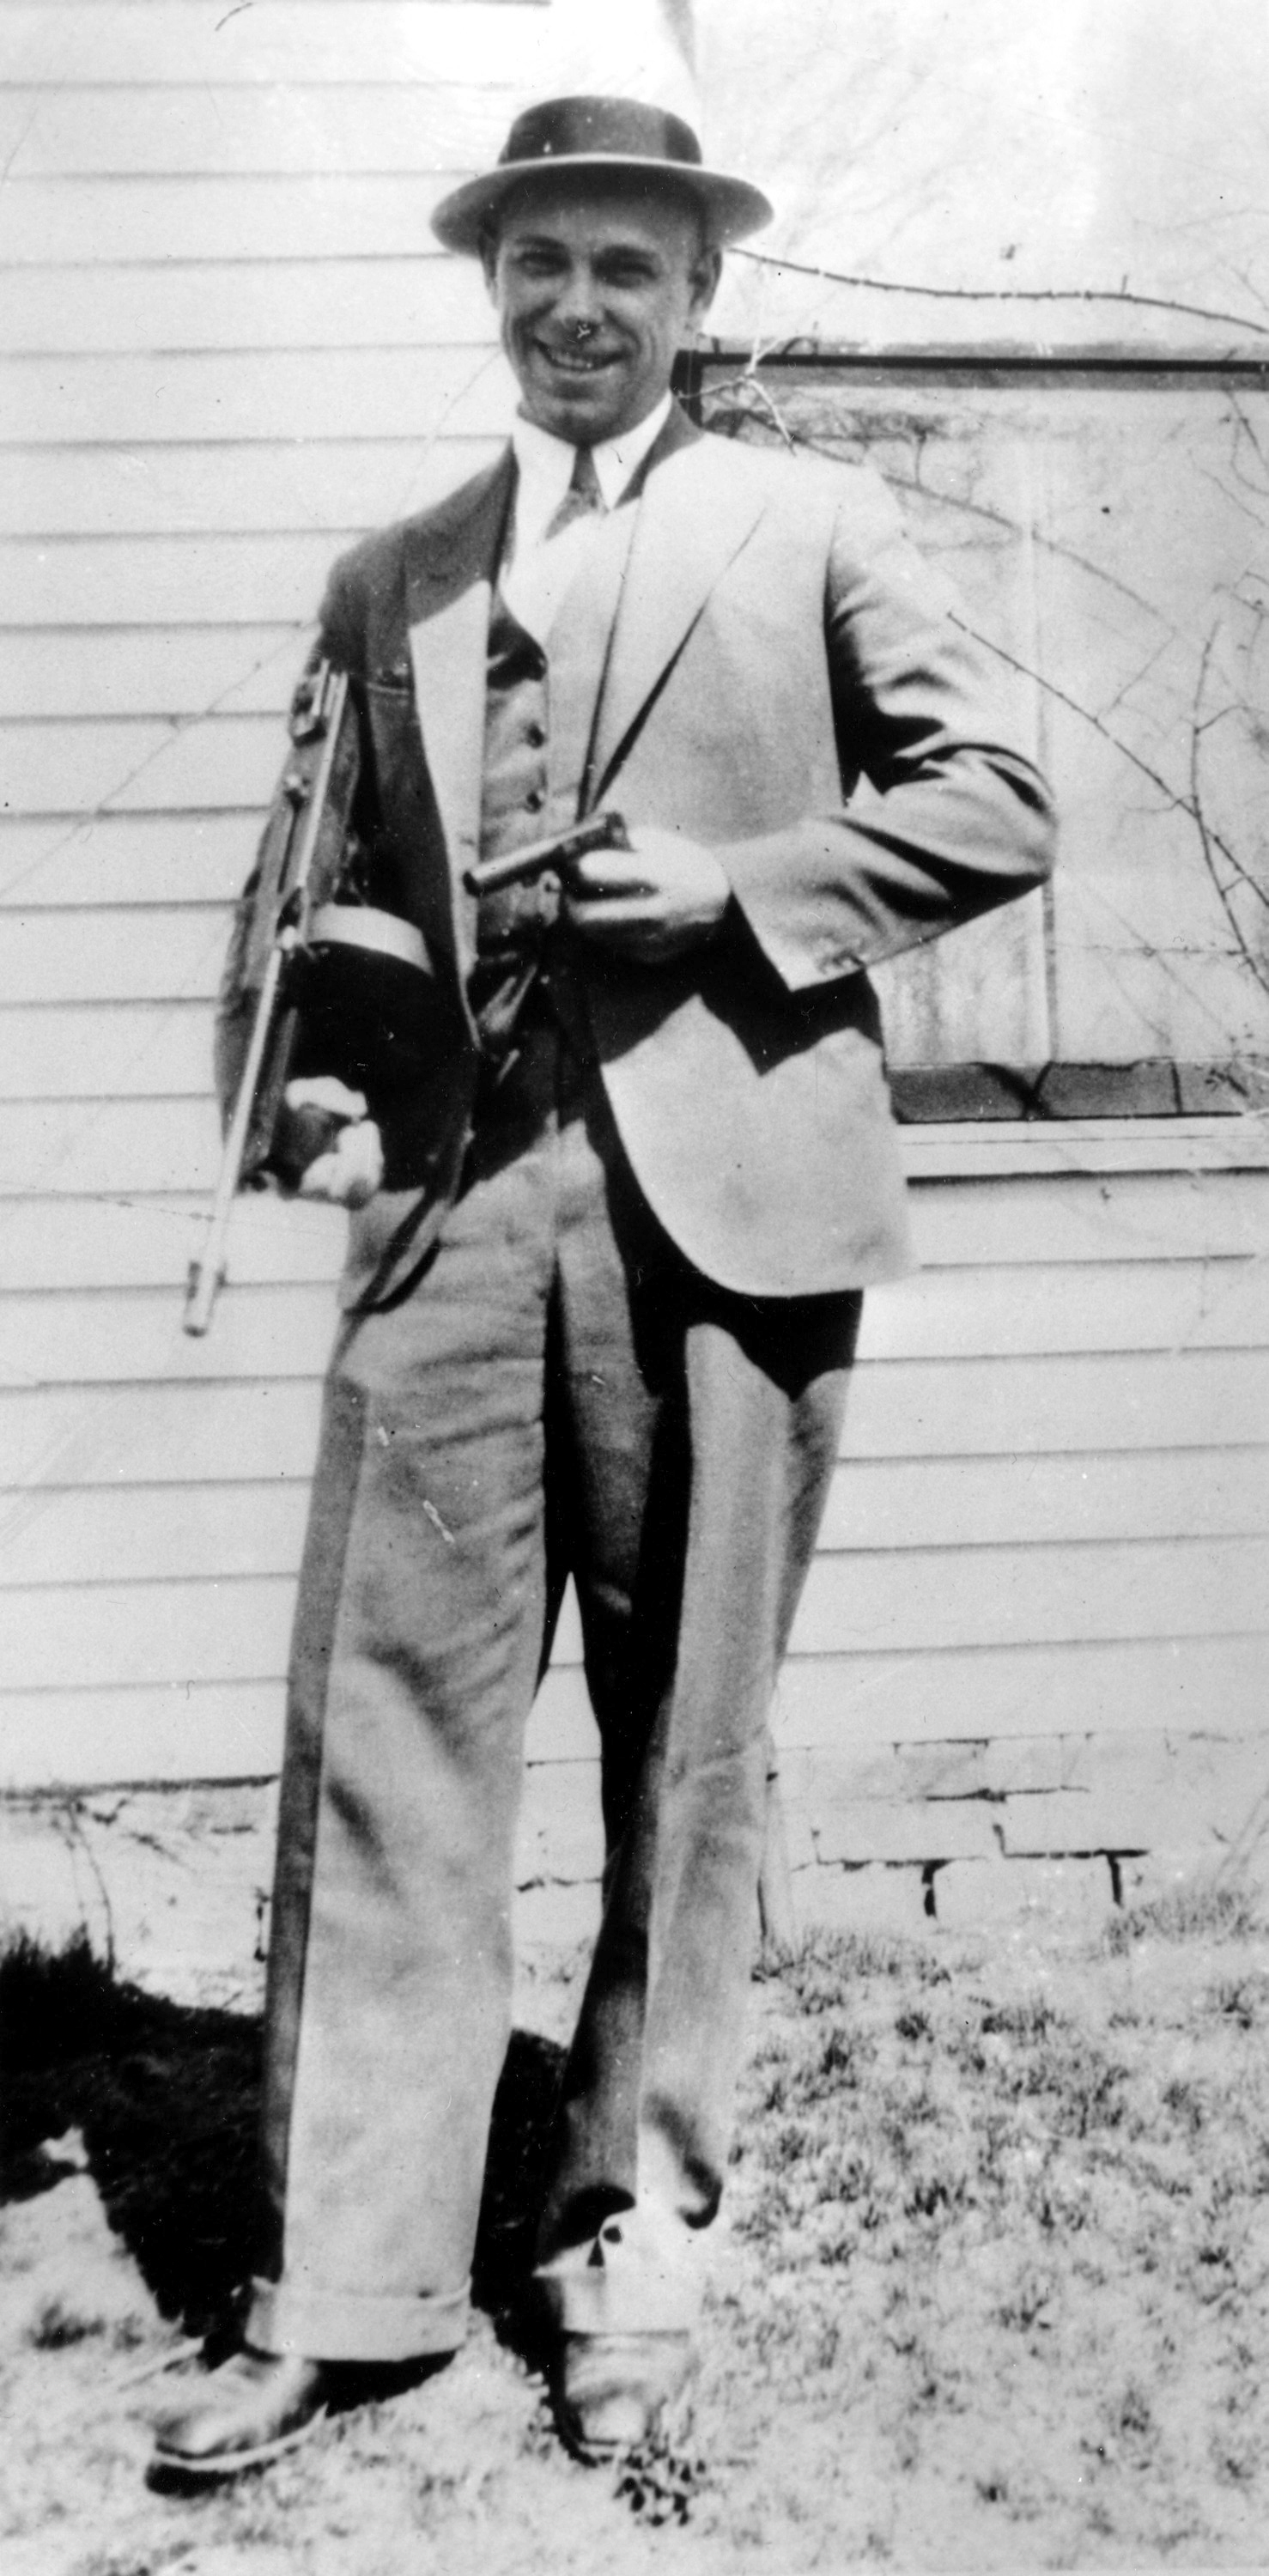 This is a 1934 file photo of desperado John Dillinger near Moore, Ind.